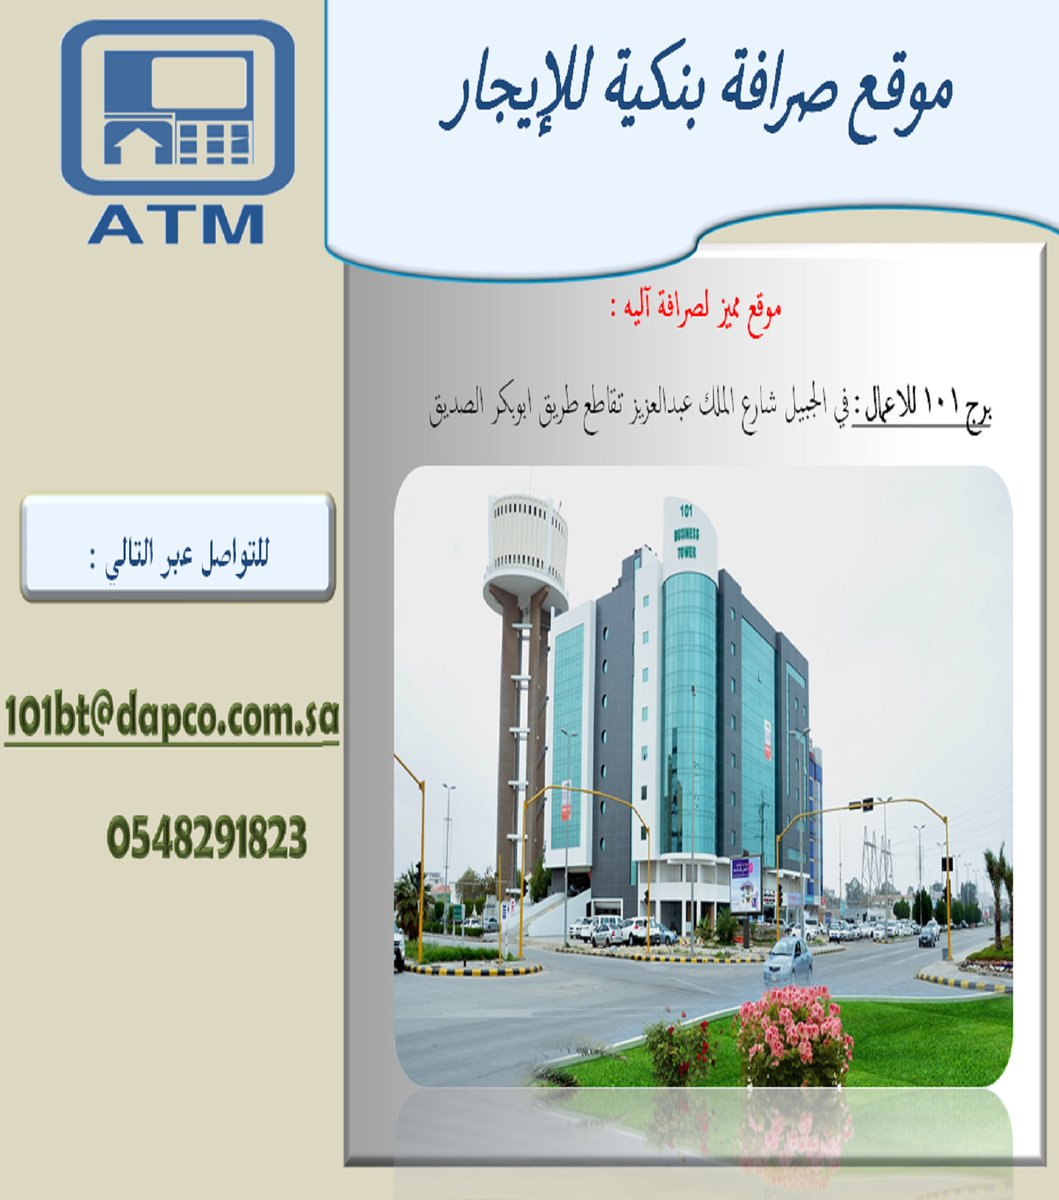 We have places available for bank  A T M #bank #ATM https://t.co/vKggmdUAGA